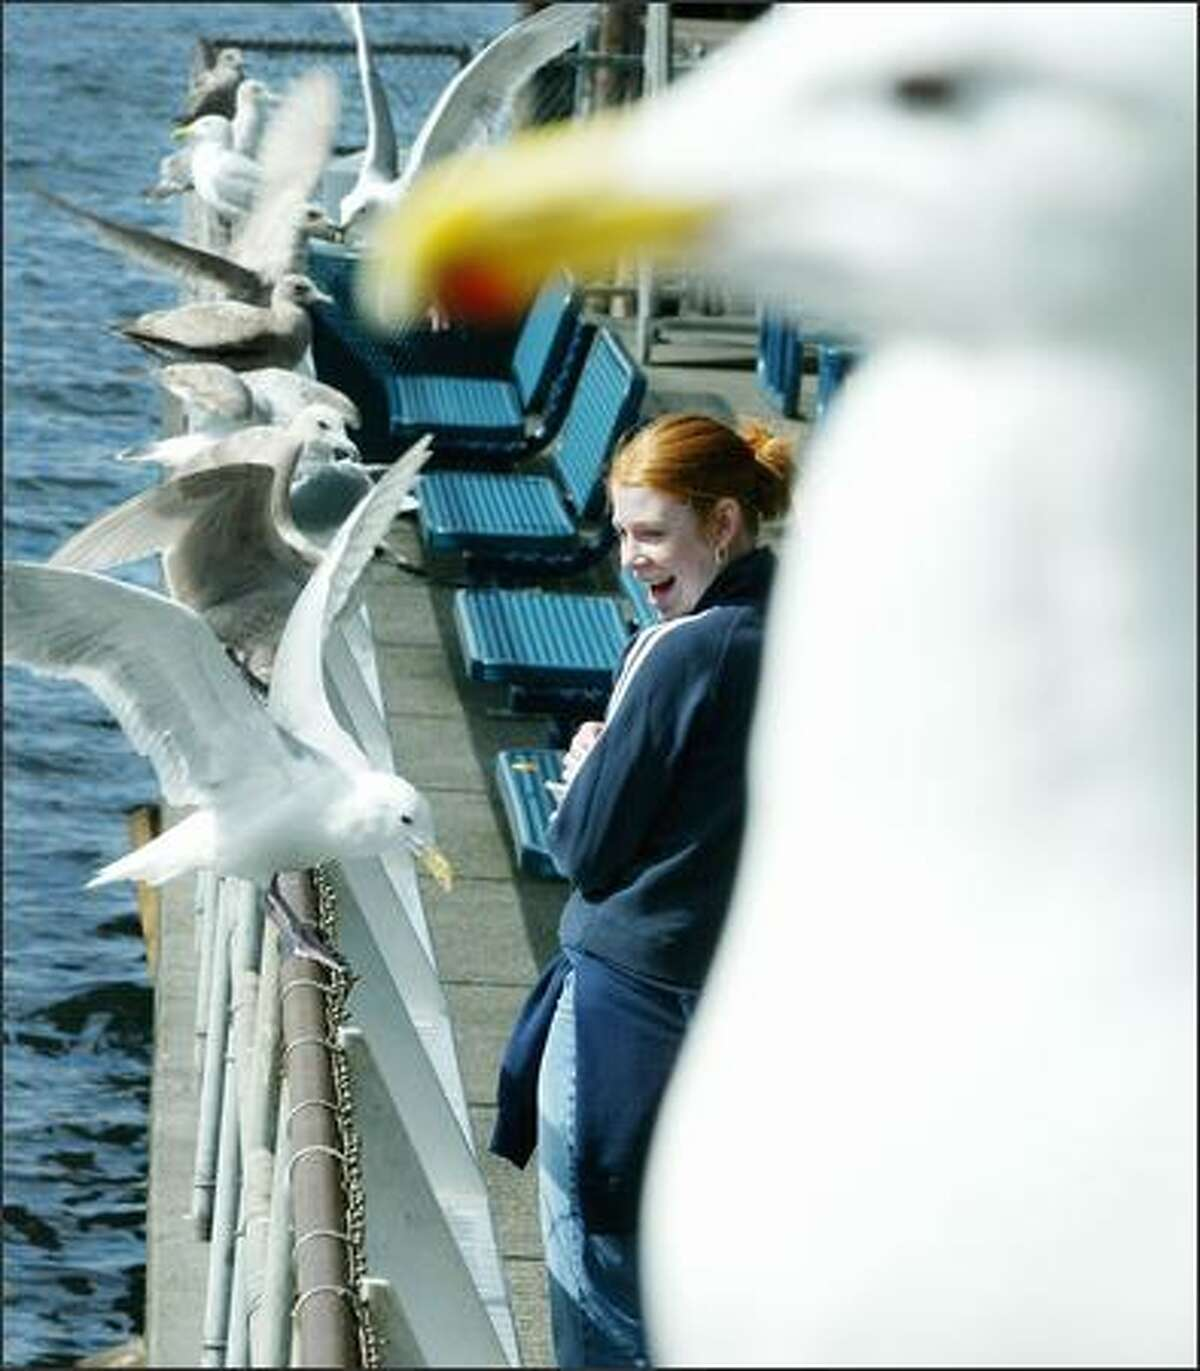 Feeding the sea gulls at Pier 54, as visiting Alisa Thompson of Oregon does here yesterday, has been a long-standing Ivar's tradition.